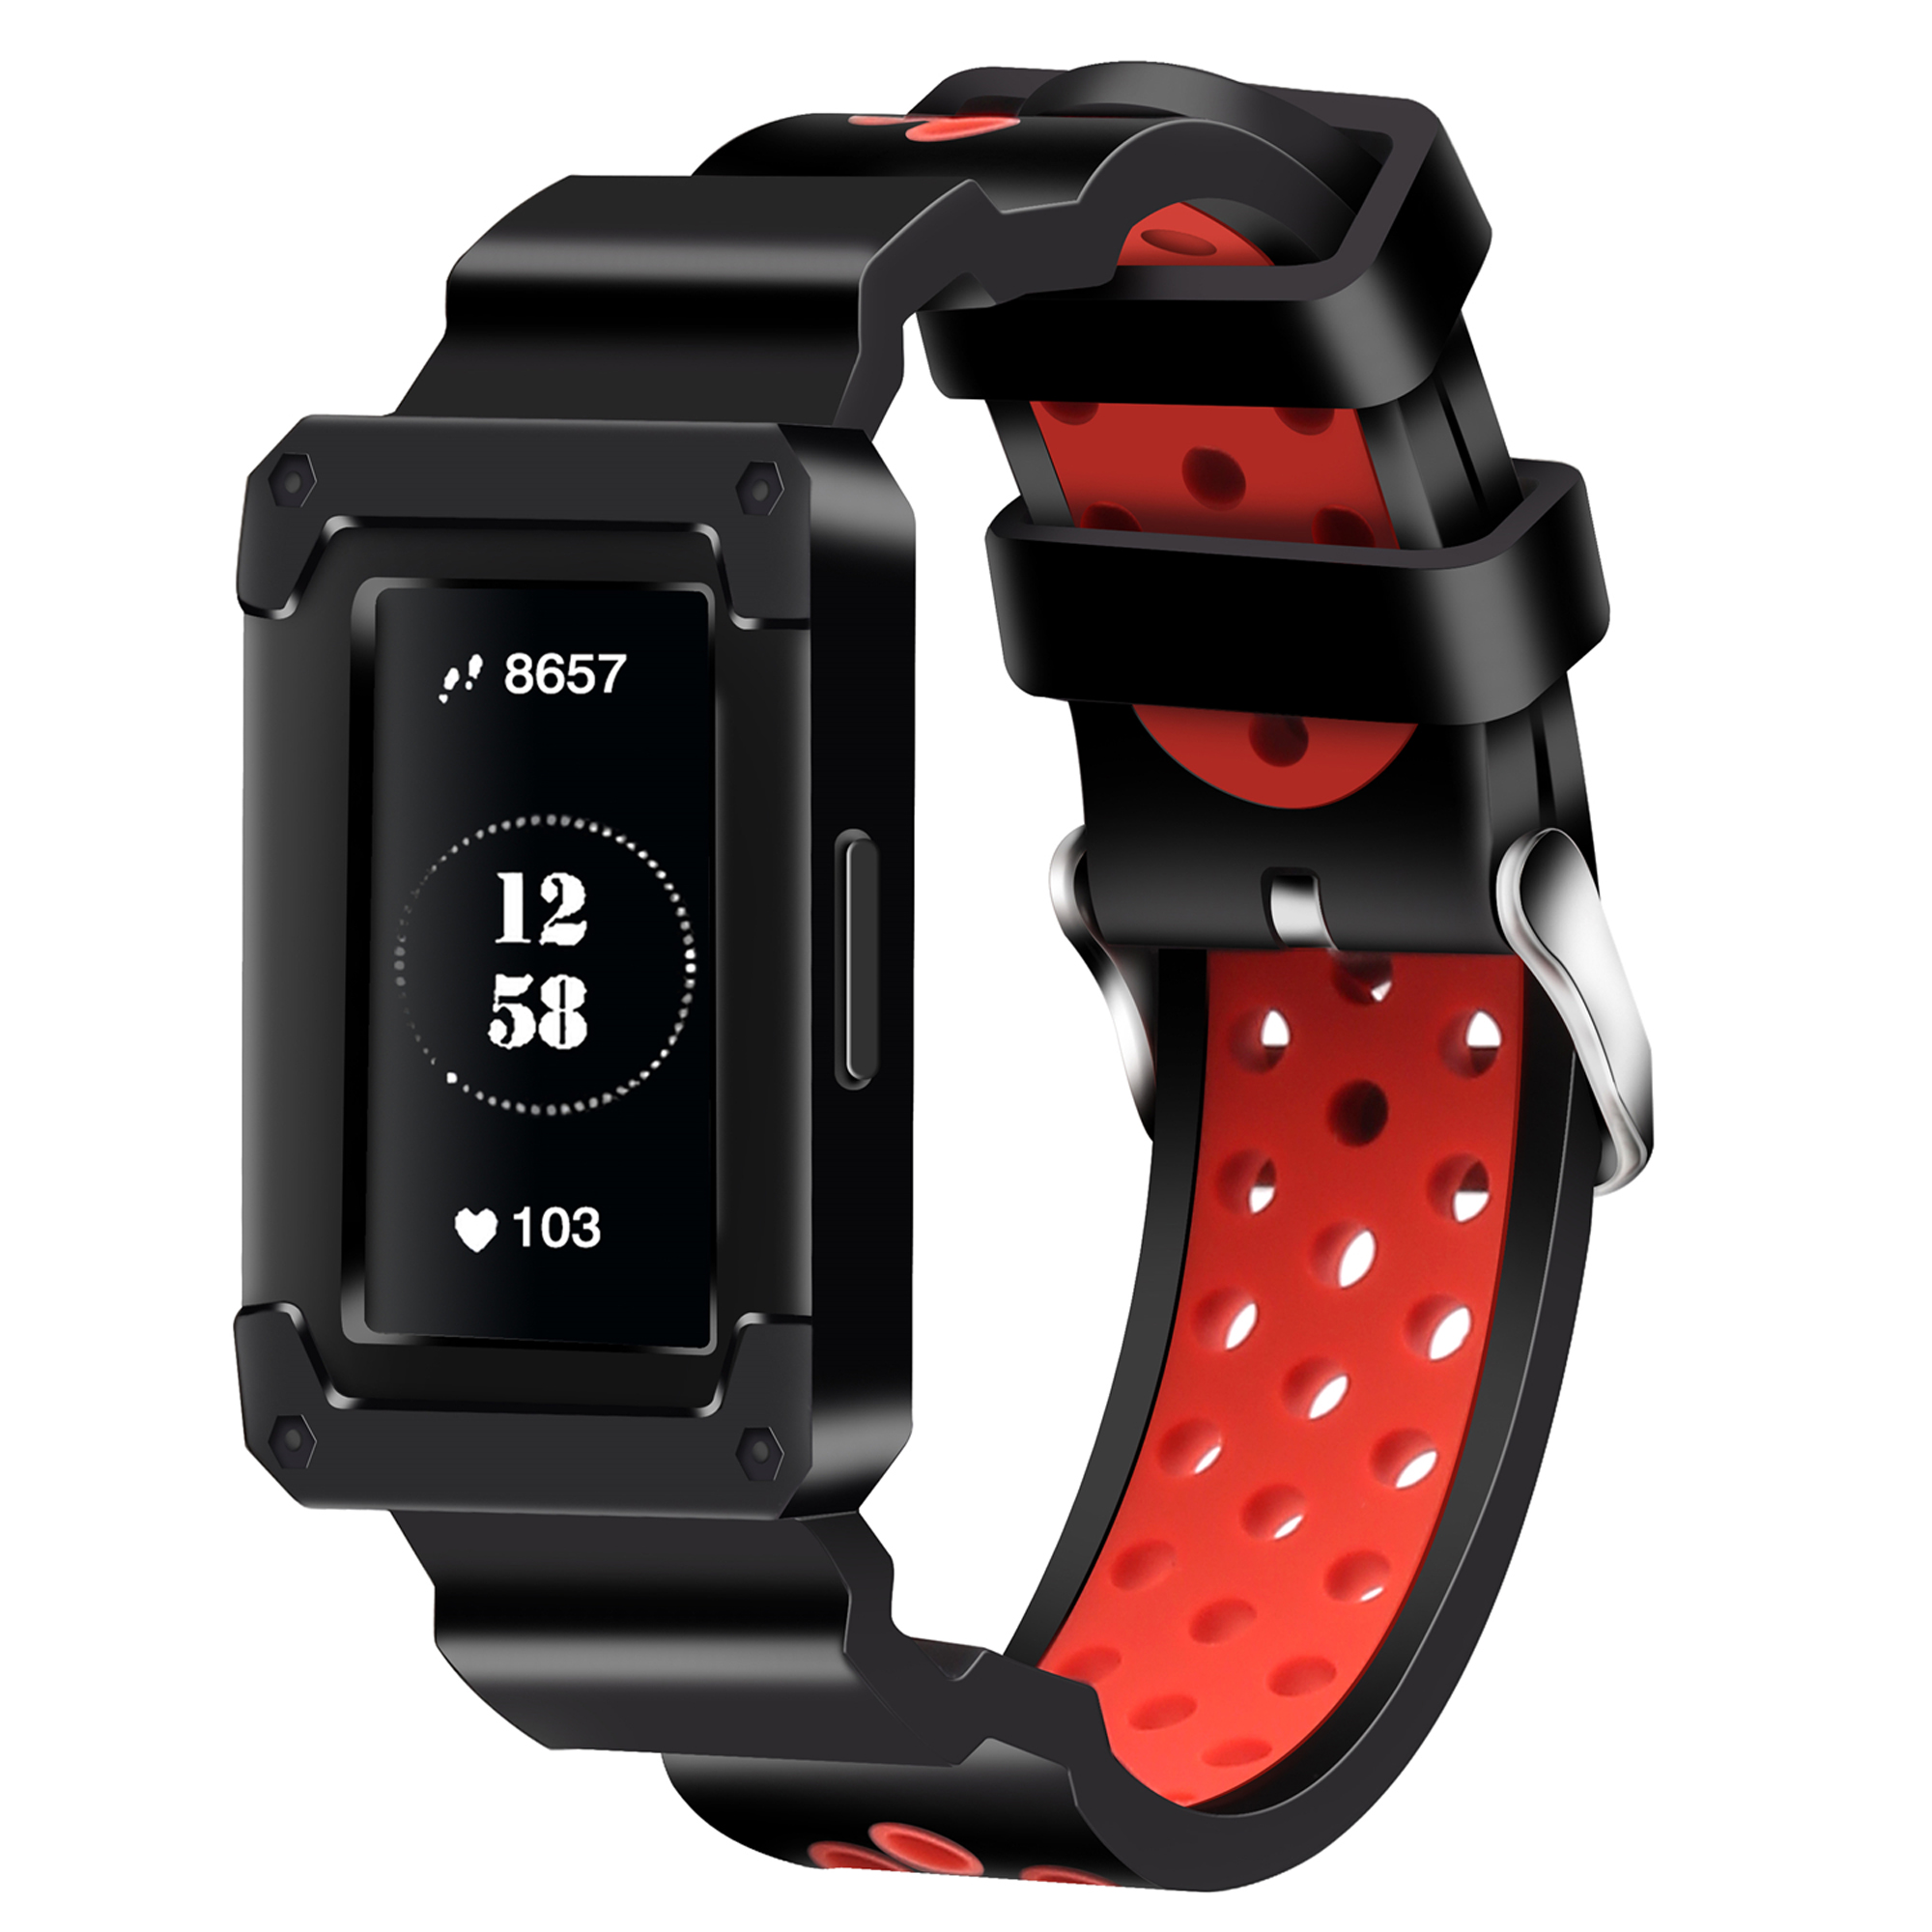 Moretek Fitbit Charge 3 Replacement Bands, Soft Silicone Sport Wrist Band Strap for Fitbit Charge 3 (Black+Red)